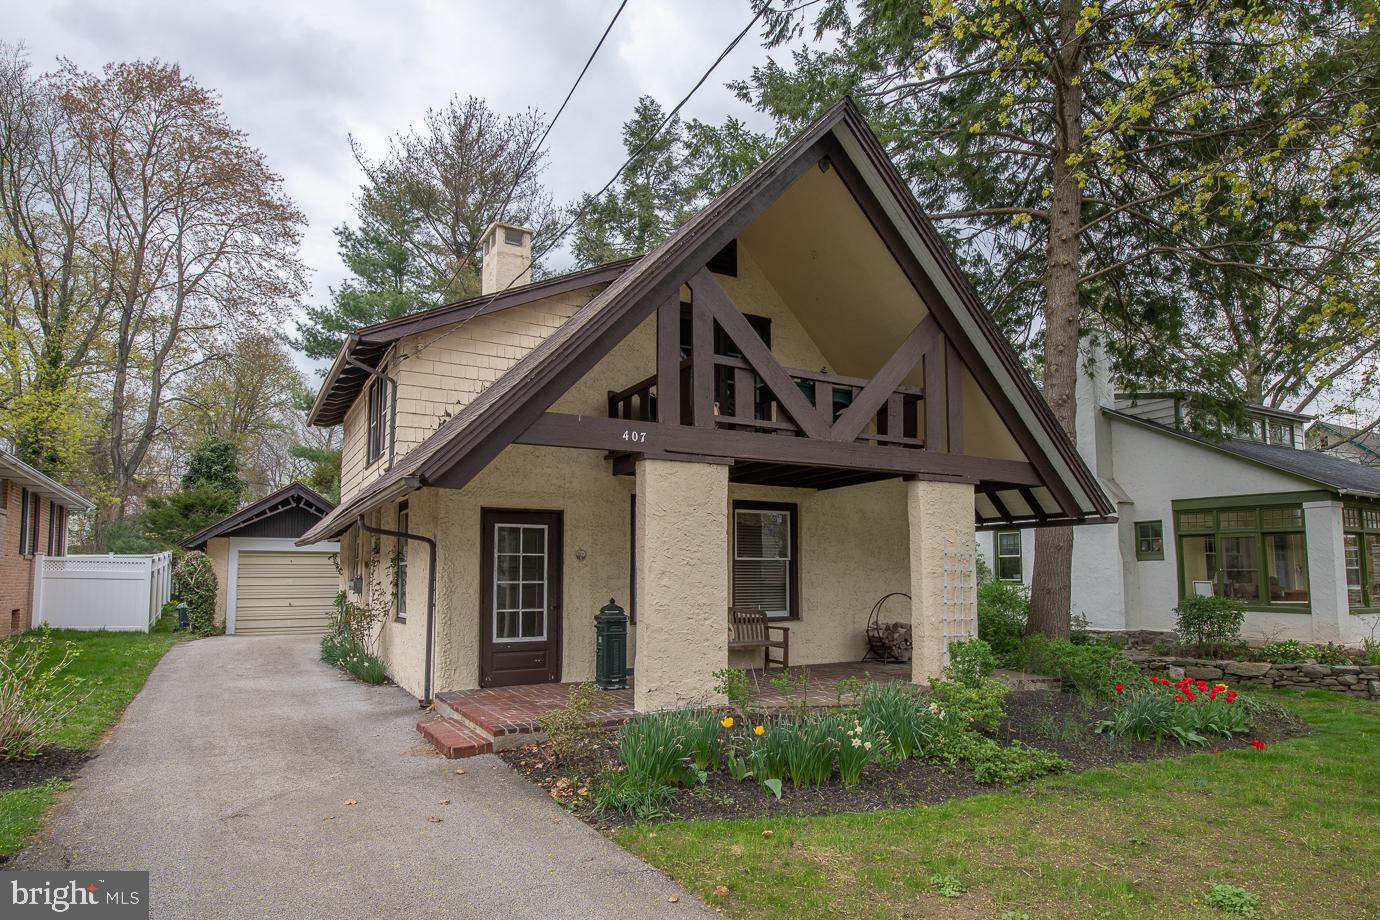 407 Grove Place Narberth, PA 19072